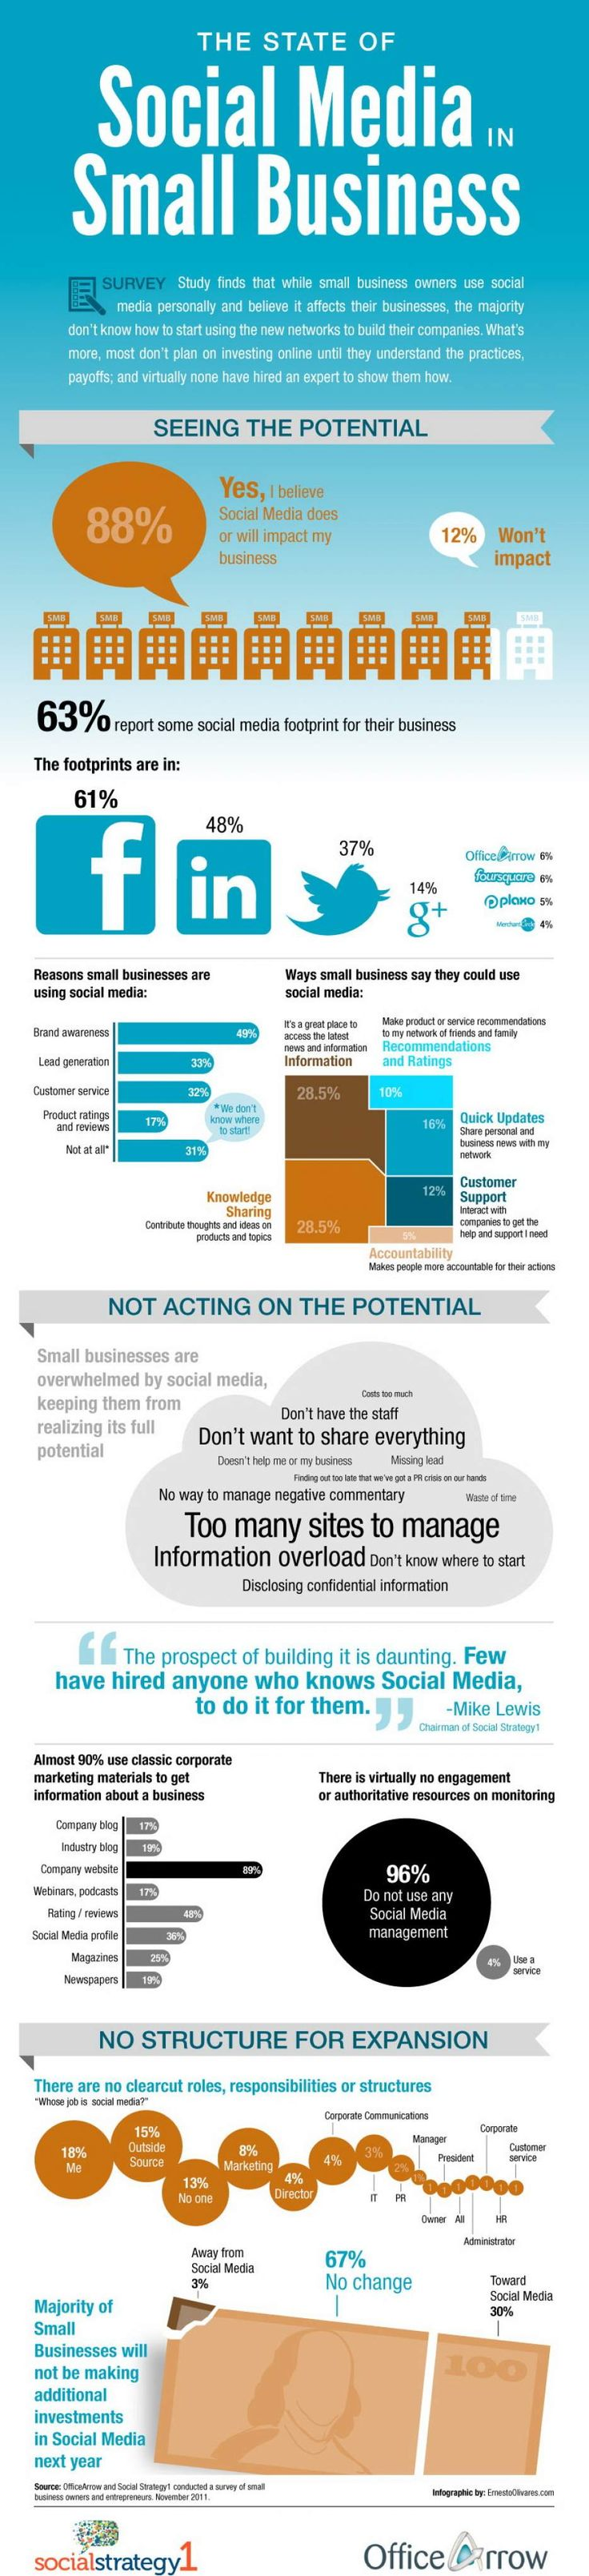 30 best Small Buisness Idea images on Pinterest | Small businesses ...